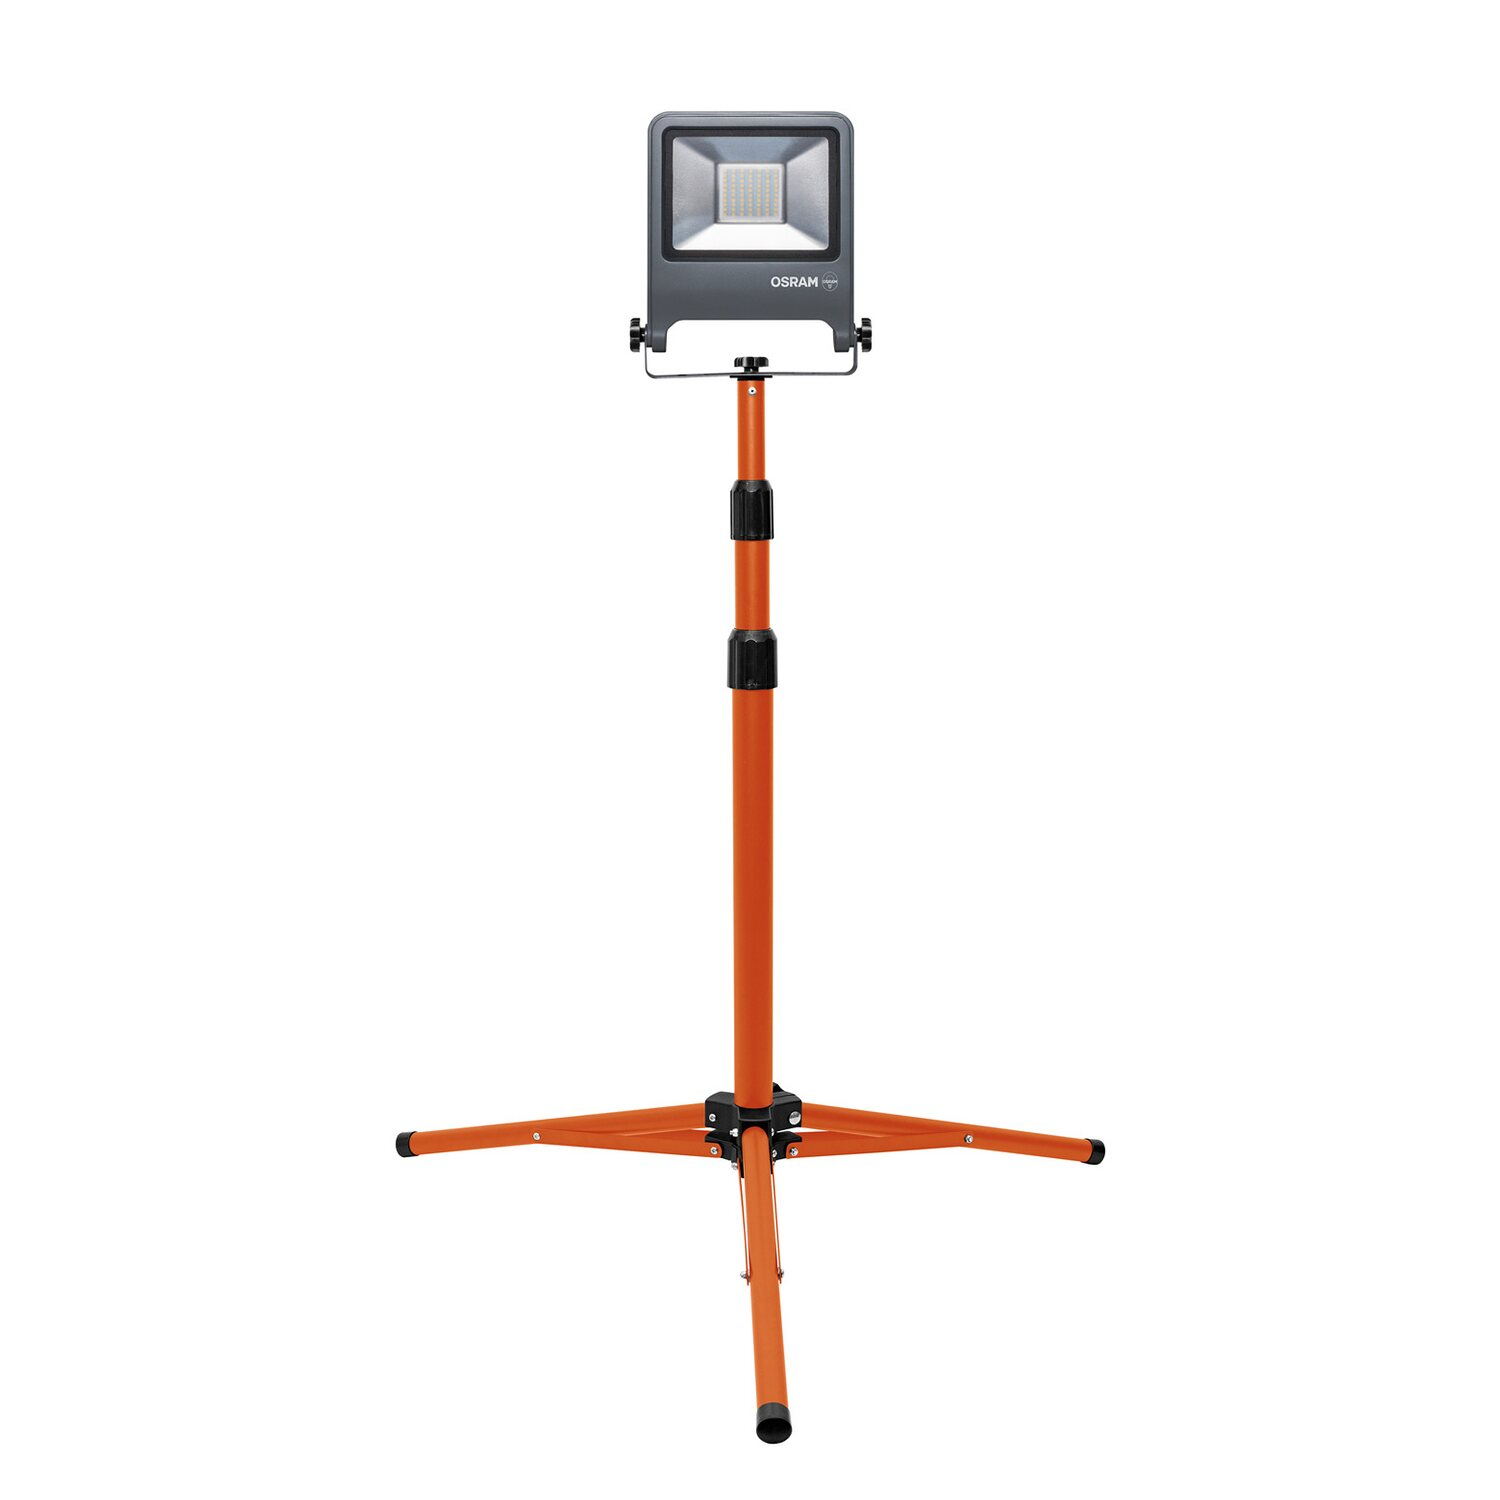 osram led baustrahler worklight tripod 50 w grau kaufen. Black Bedroom Furniture Sets. Home Design Ideas